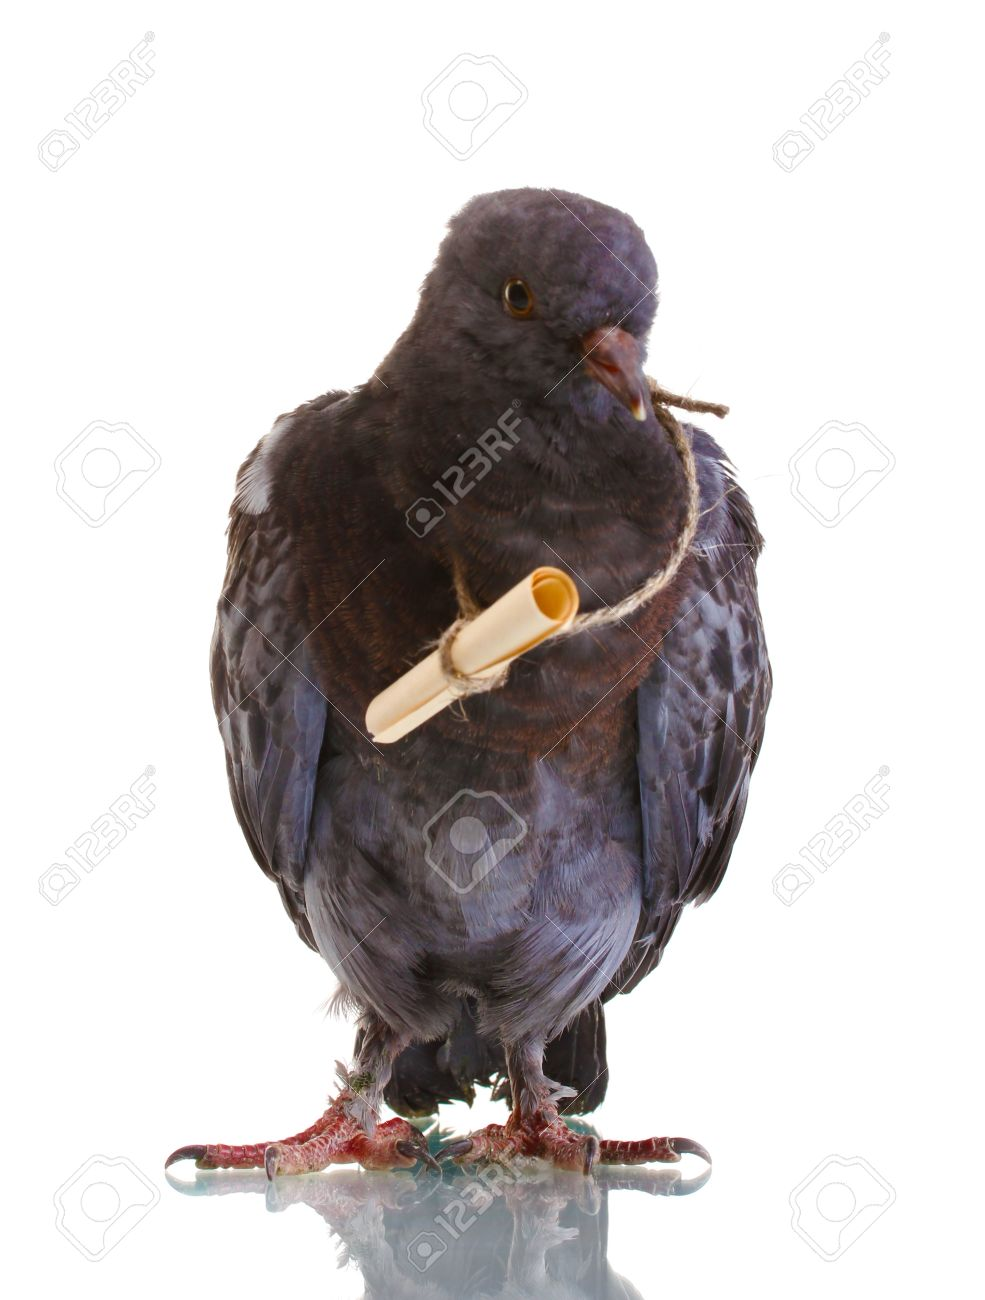 Messenger Pigeon Stock Photos, Royalty-Free Images & Vectors ...